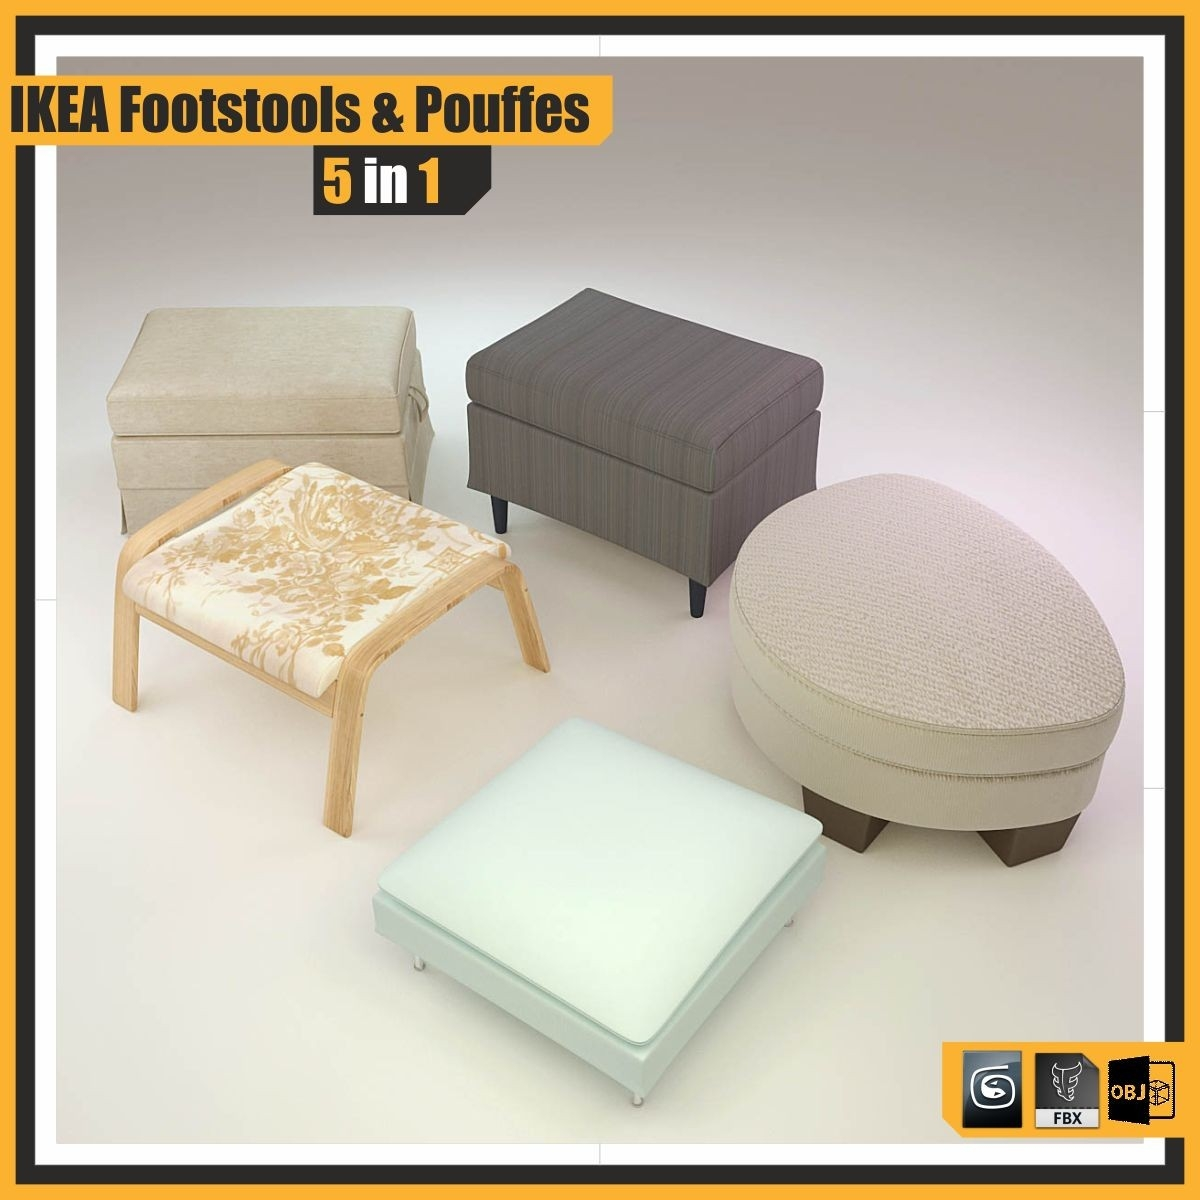 Obj Model Ikea Footstools Pouffes Within Ikea Footstools And Pouffes (Image 12 of 15)